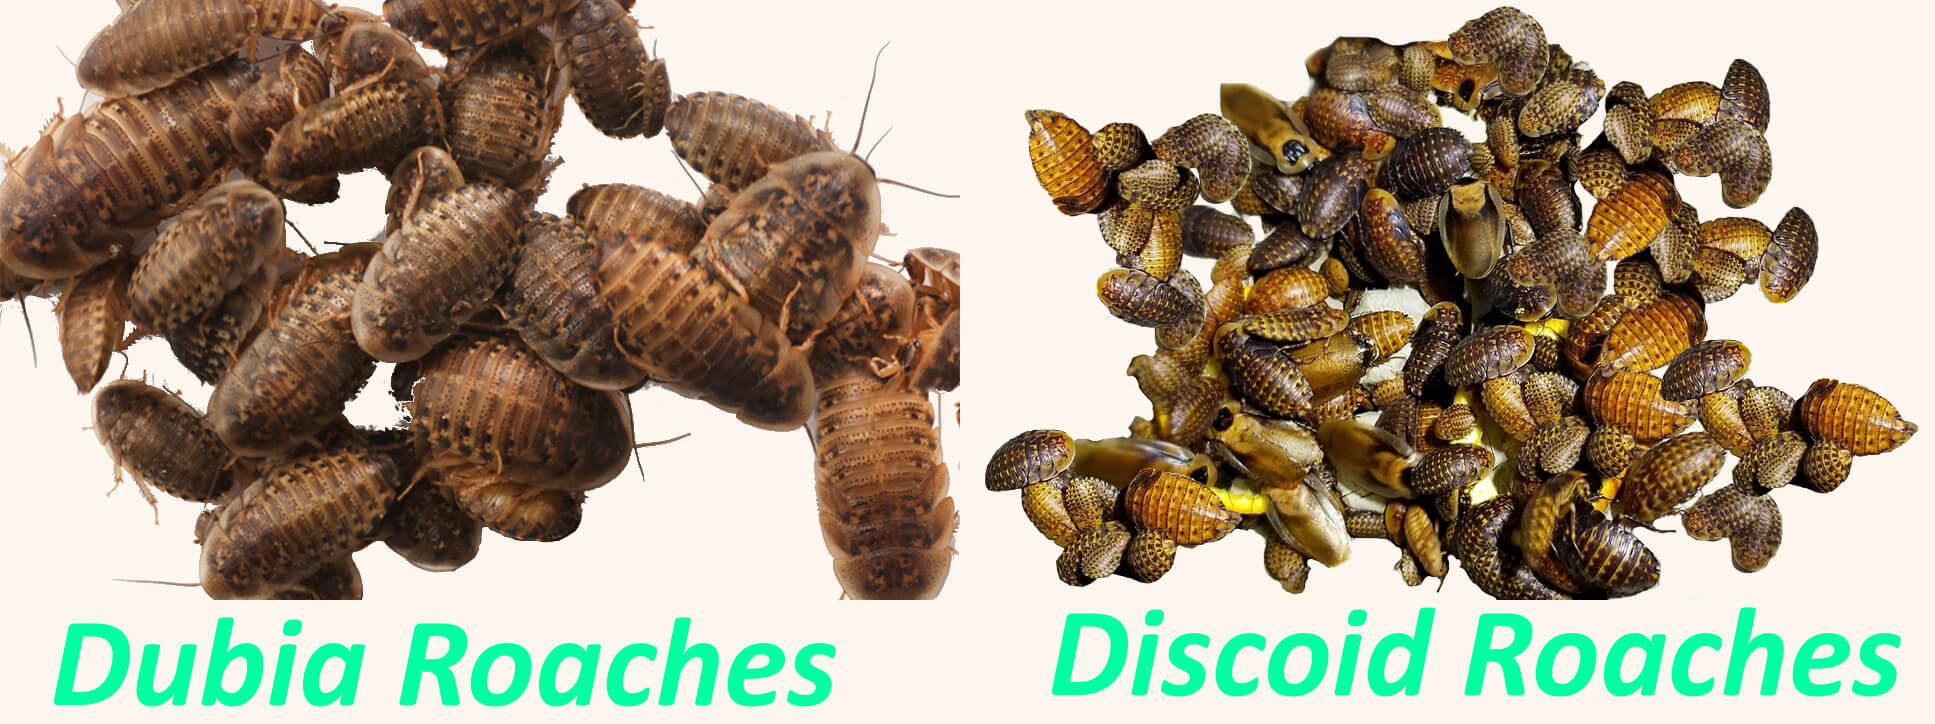 difference between dubia and discoid roaches